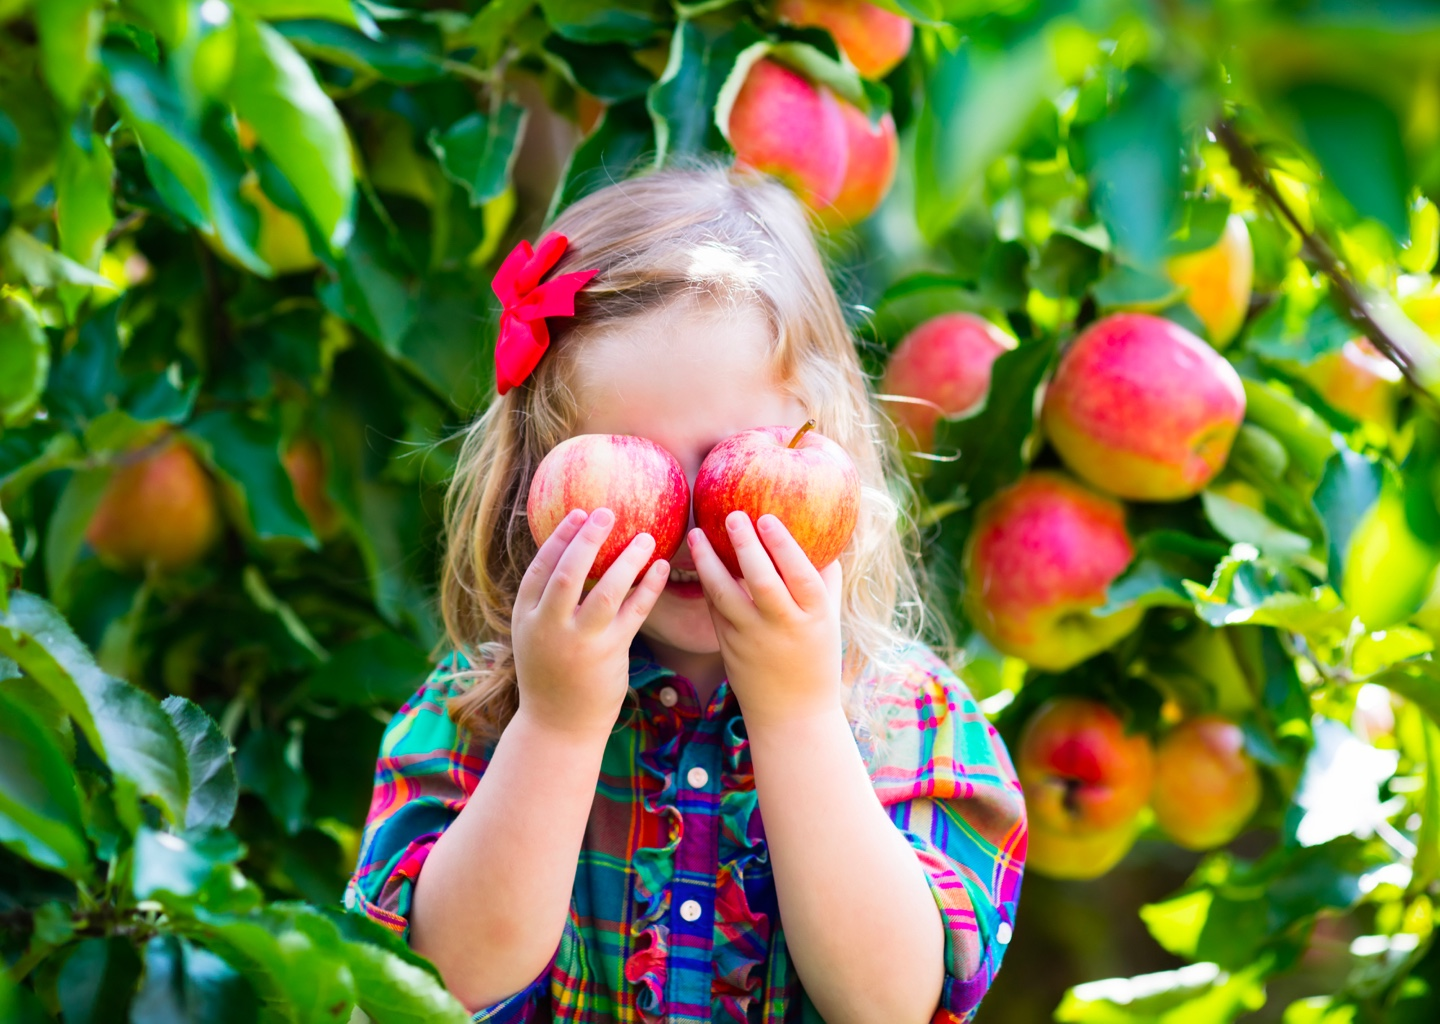 Young girl in an orchard holding fresh apples over her eyes